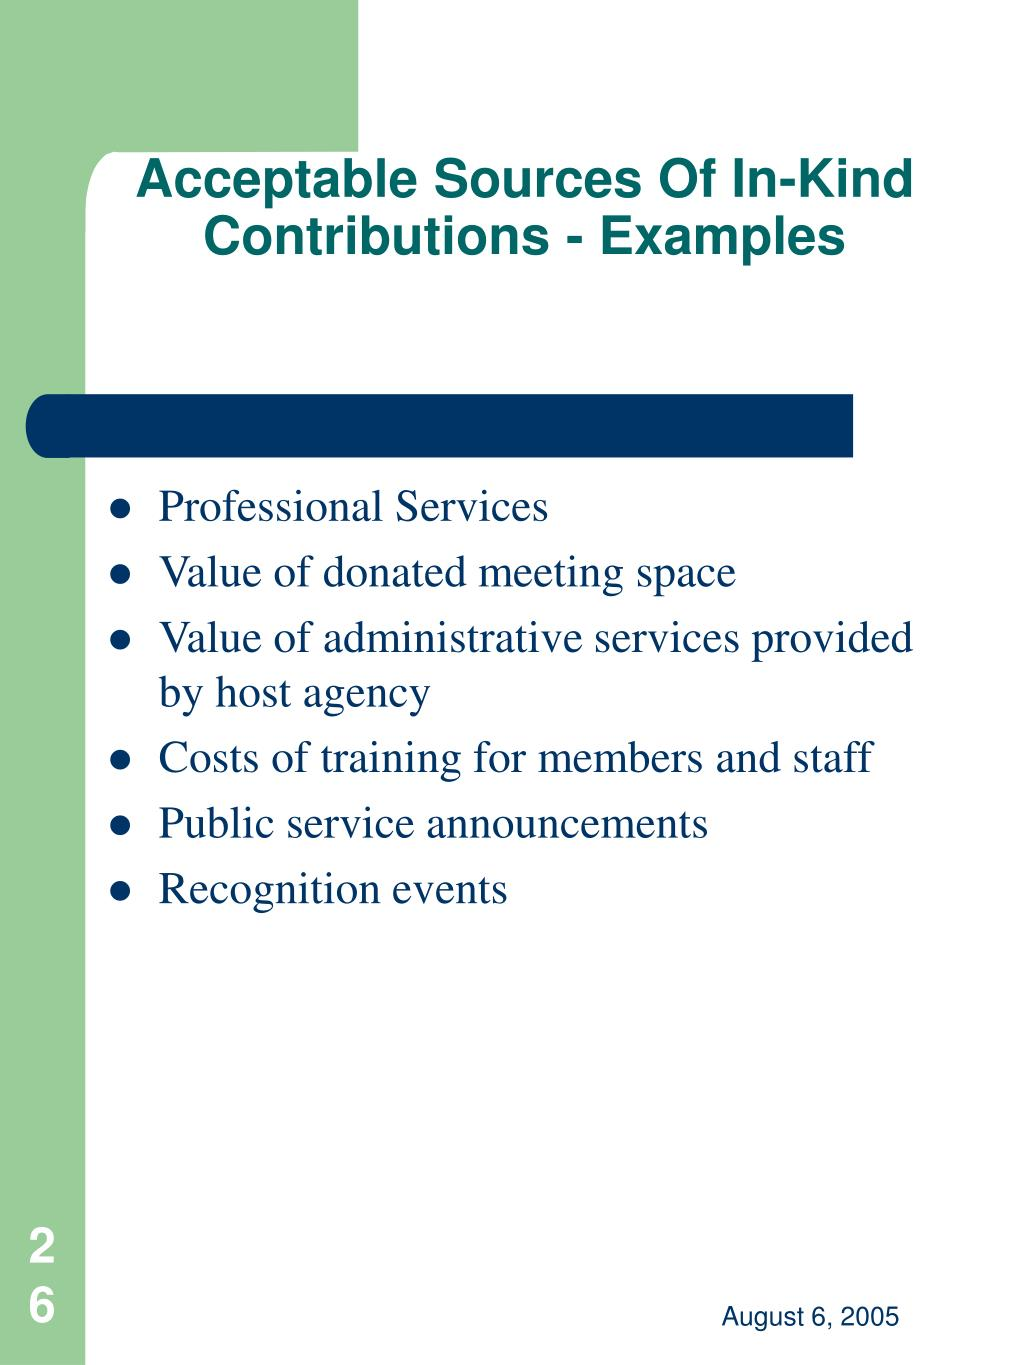 Acceptable Sources Of In-Kind Contributions - Examples